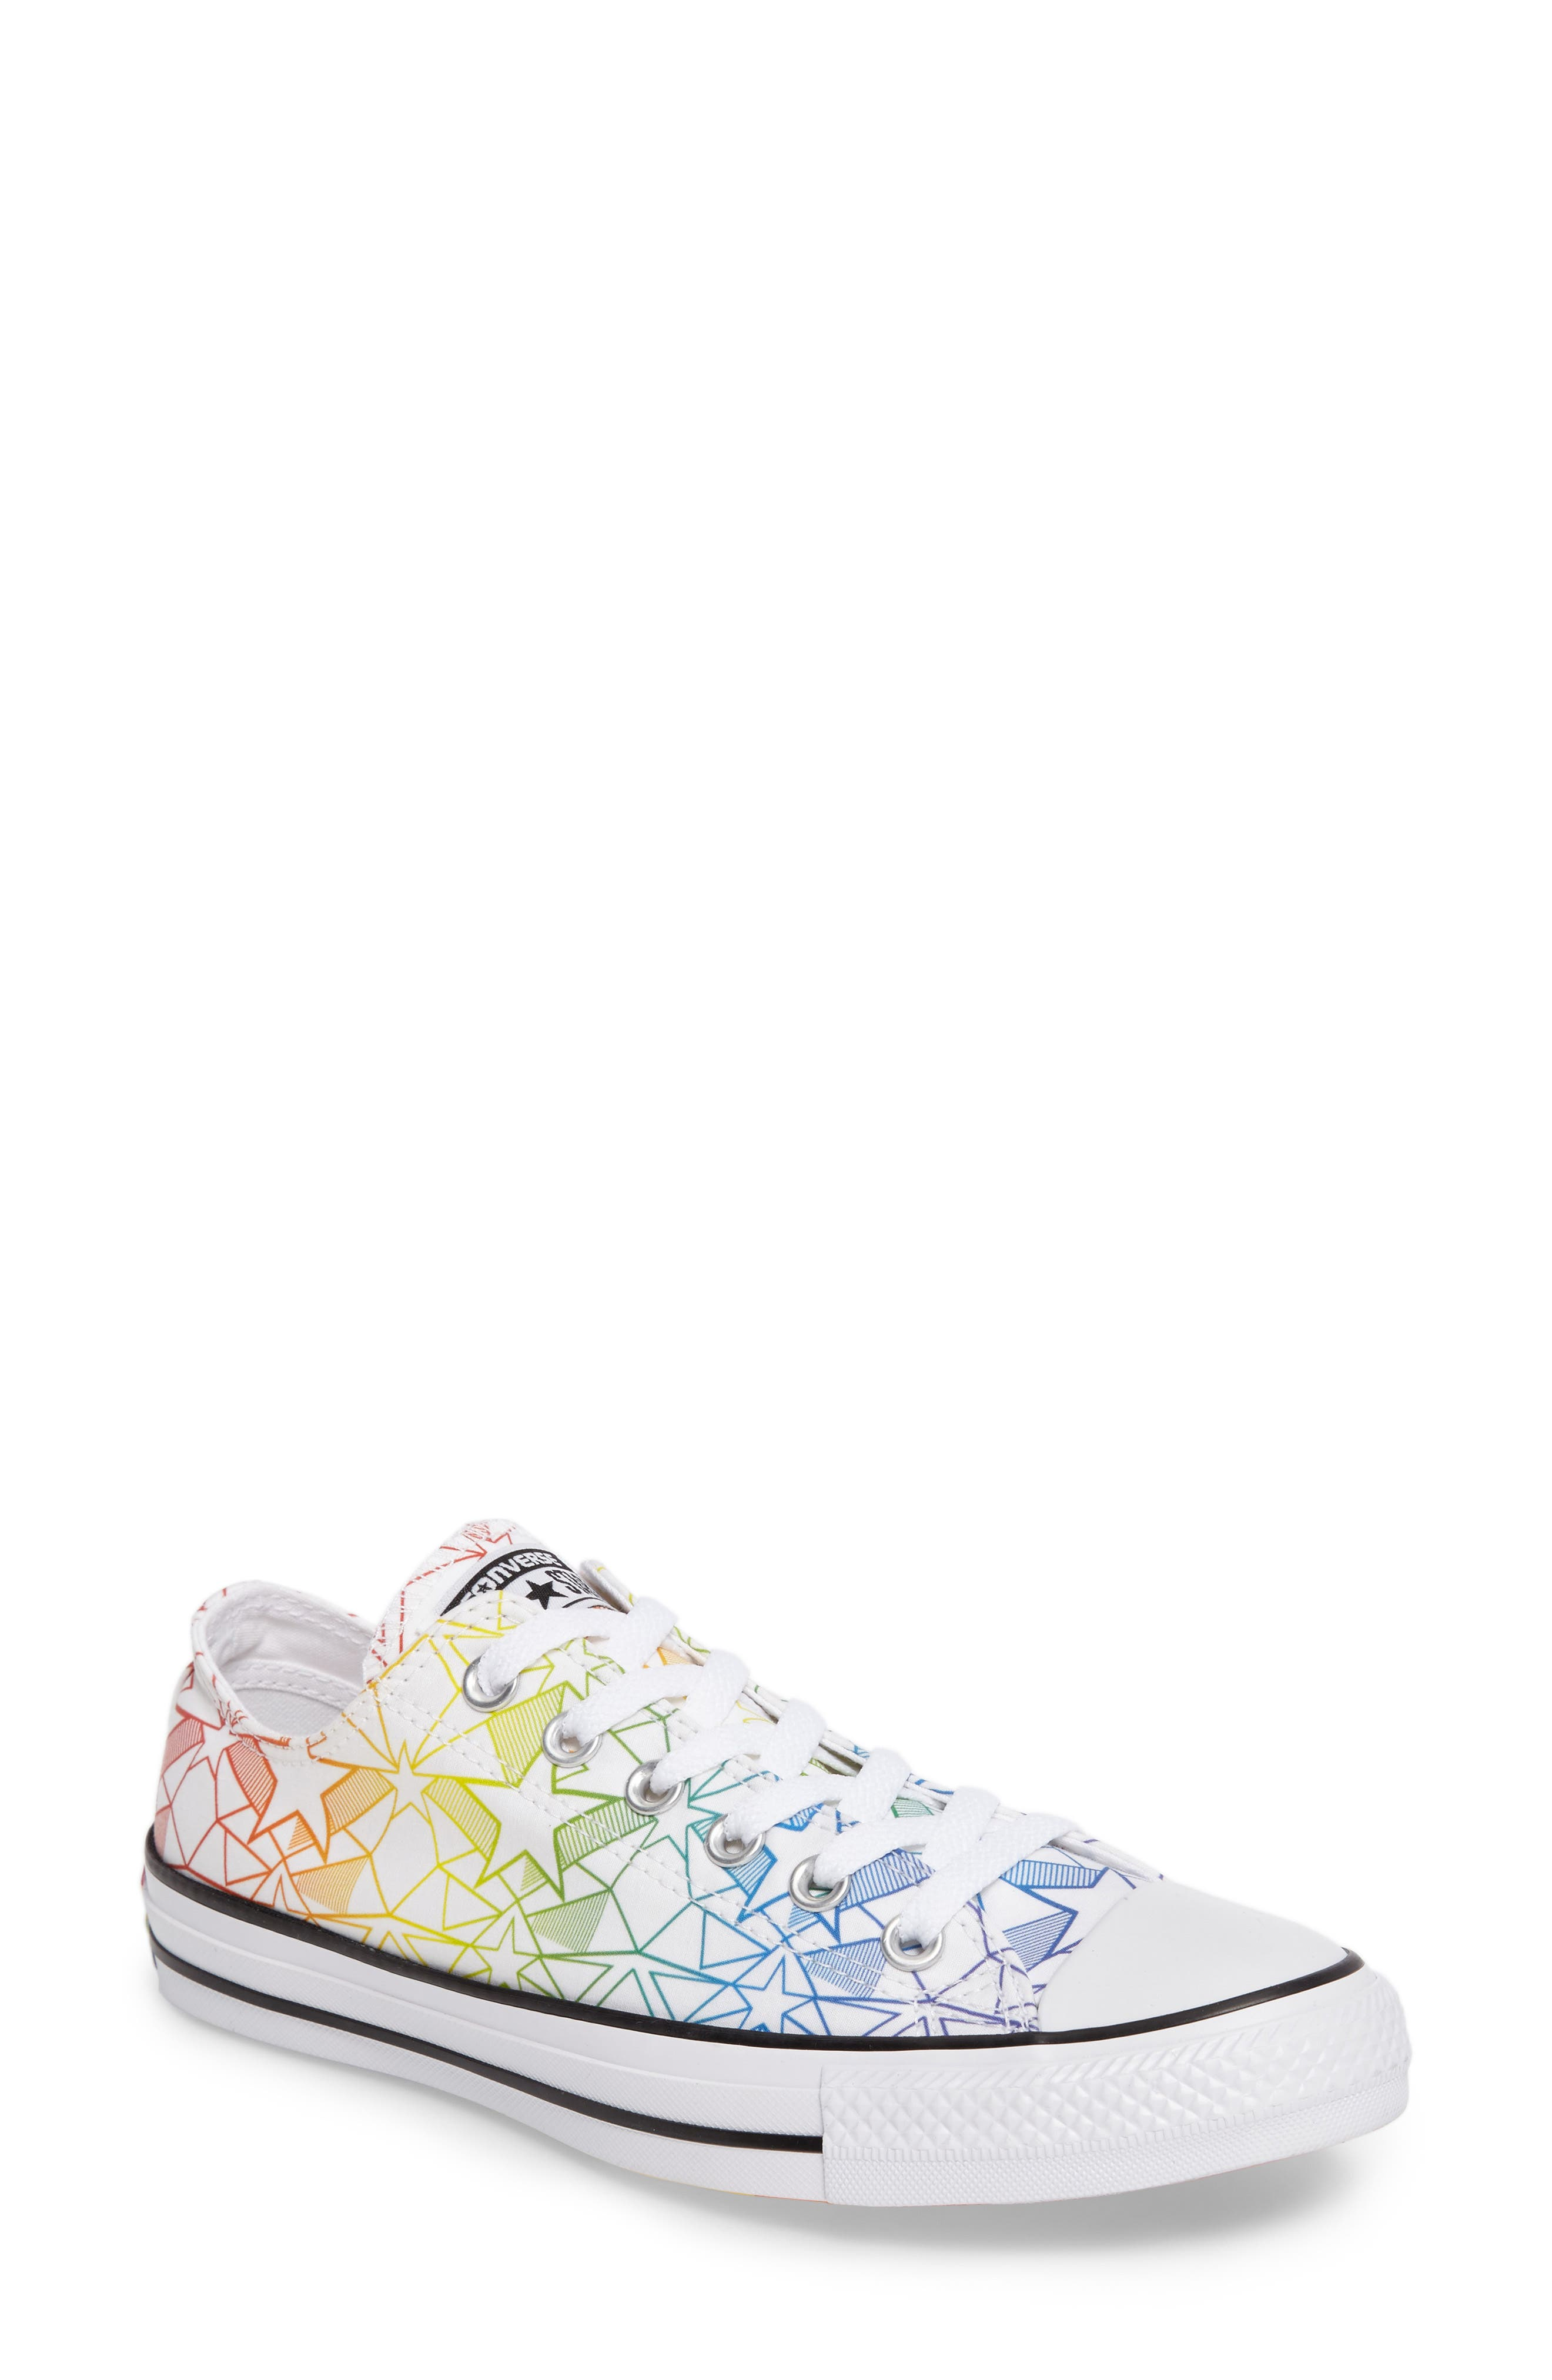 Main Image - Converse Chuck Taylor® All Star® Pride Low Top Sneaker (Women)